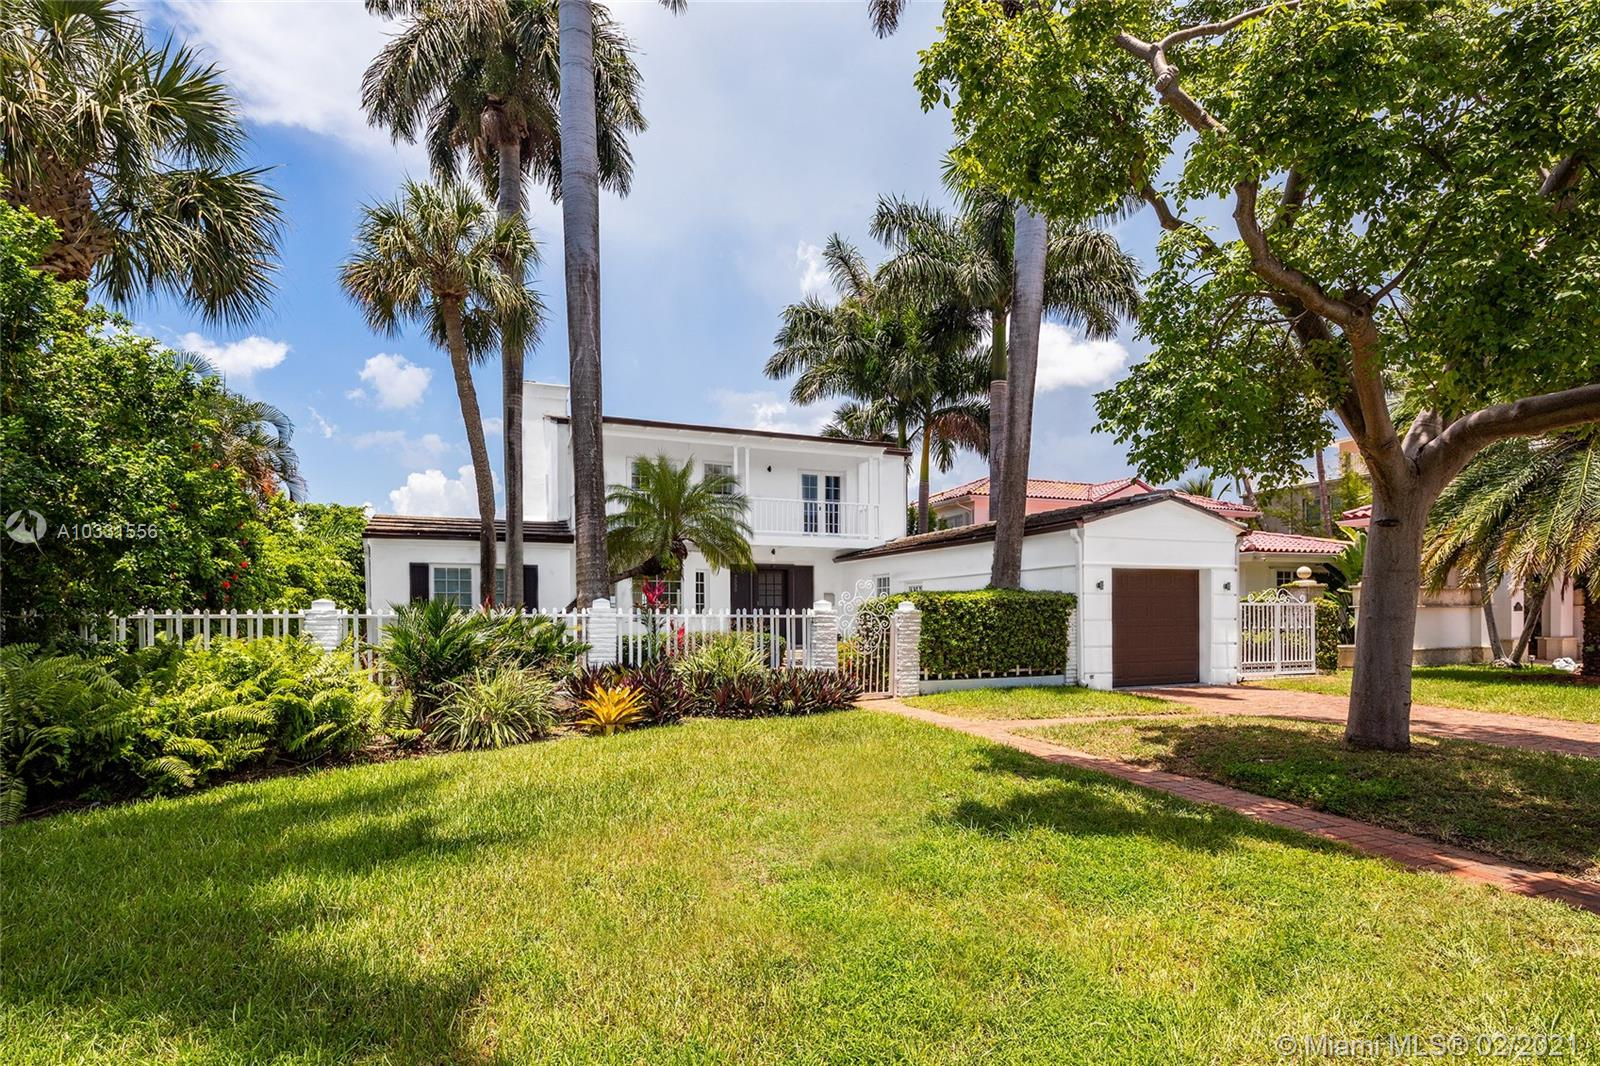 7530  Miami View Dr  For Sale A10331556, FL